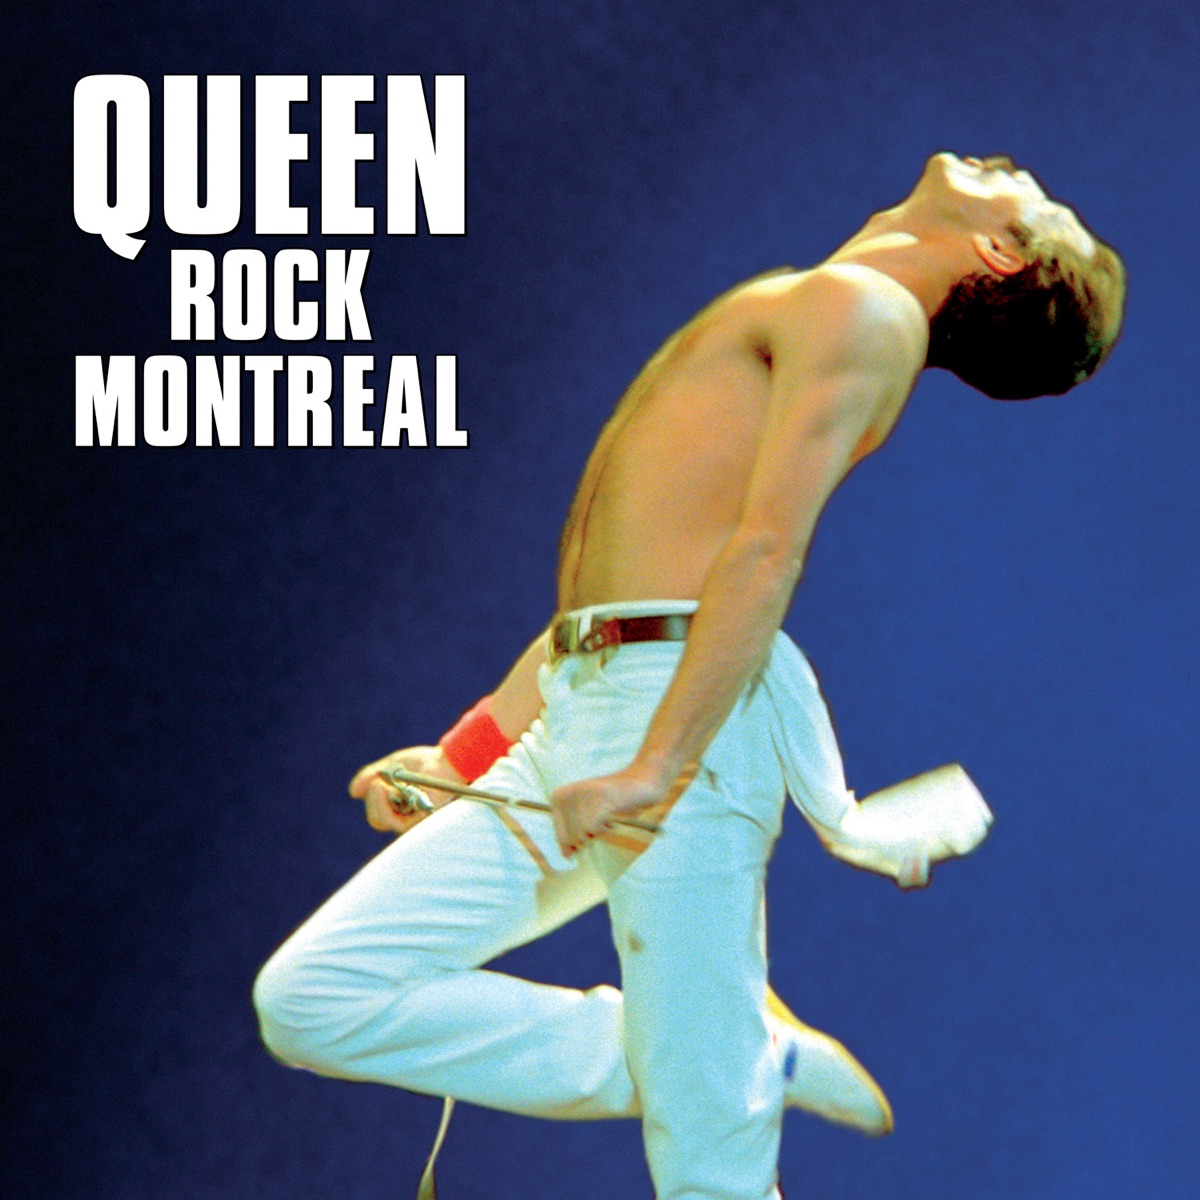 Queen Rock Montreal Queen CD cover